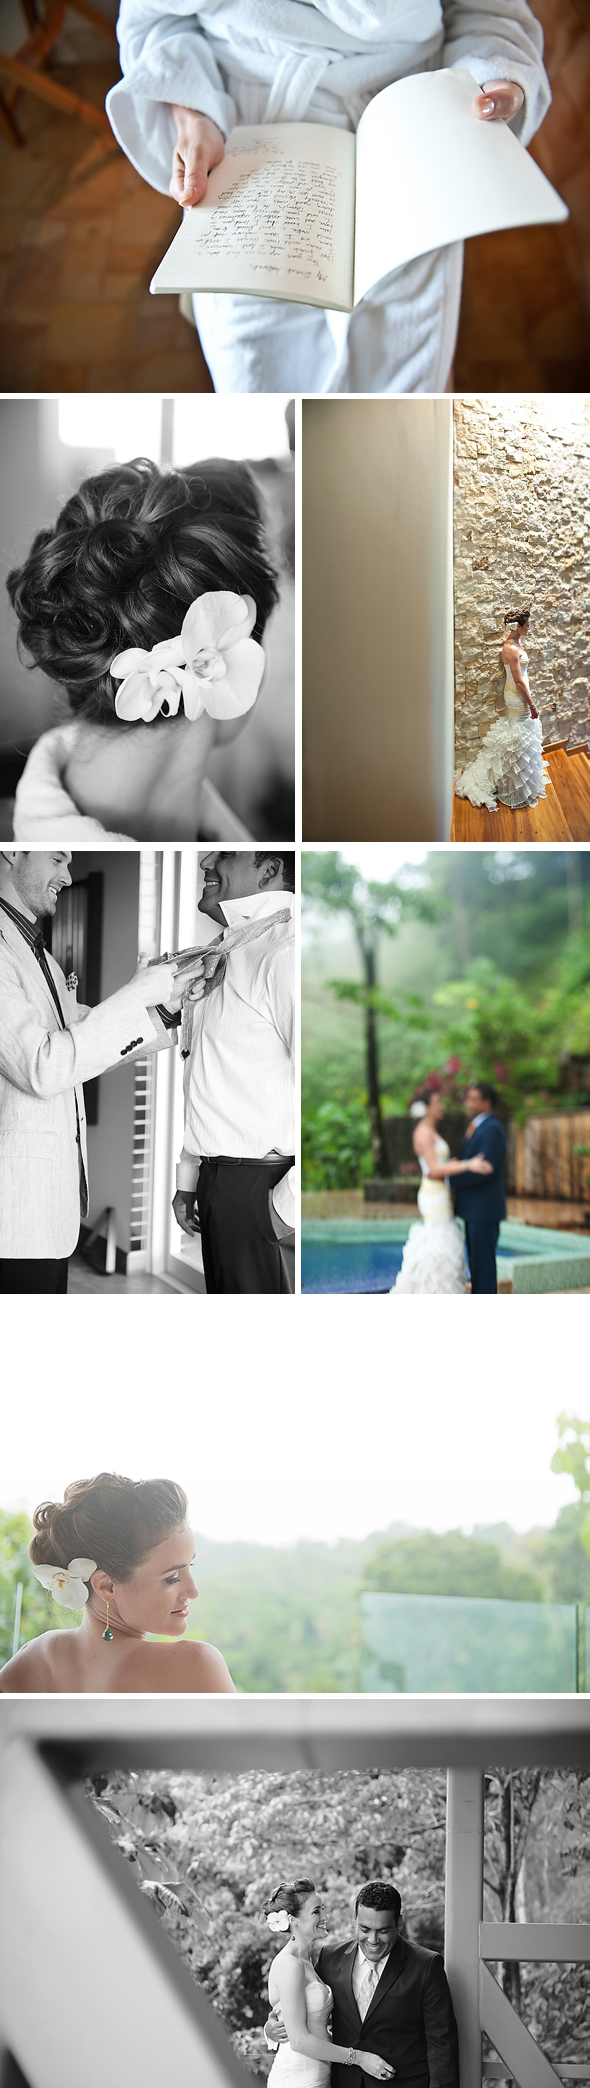 Events Costa Rica Wedding Planning